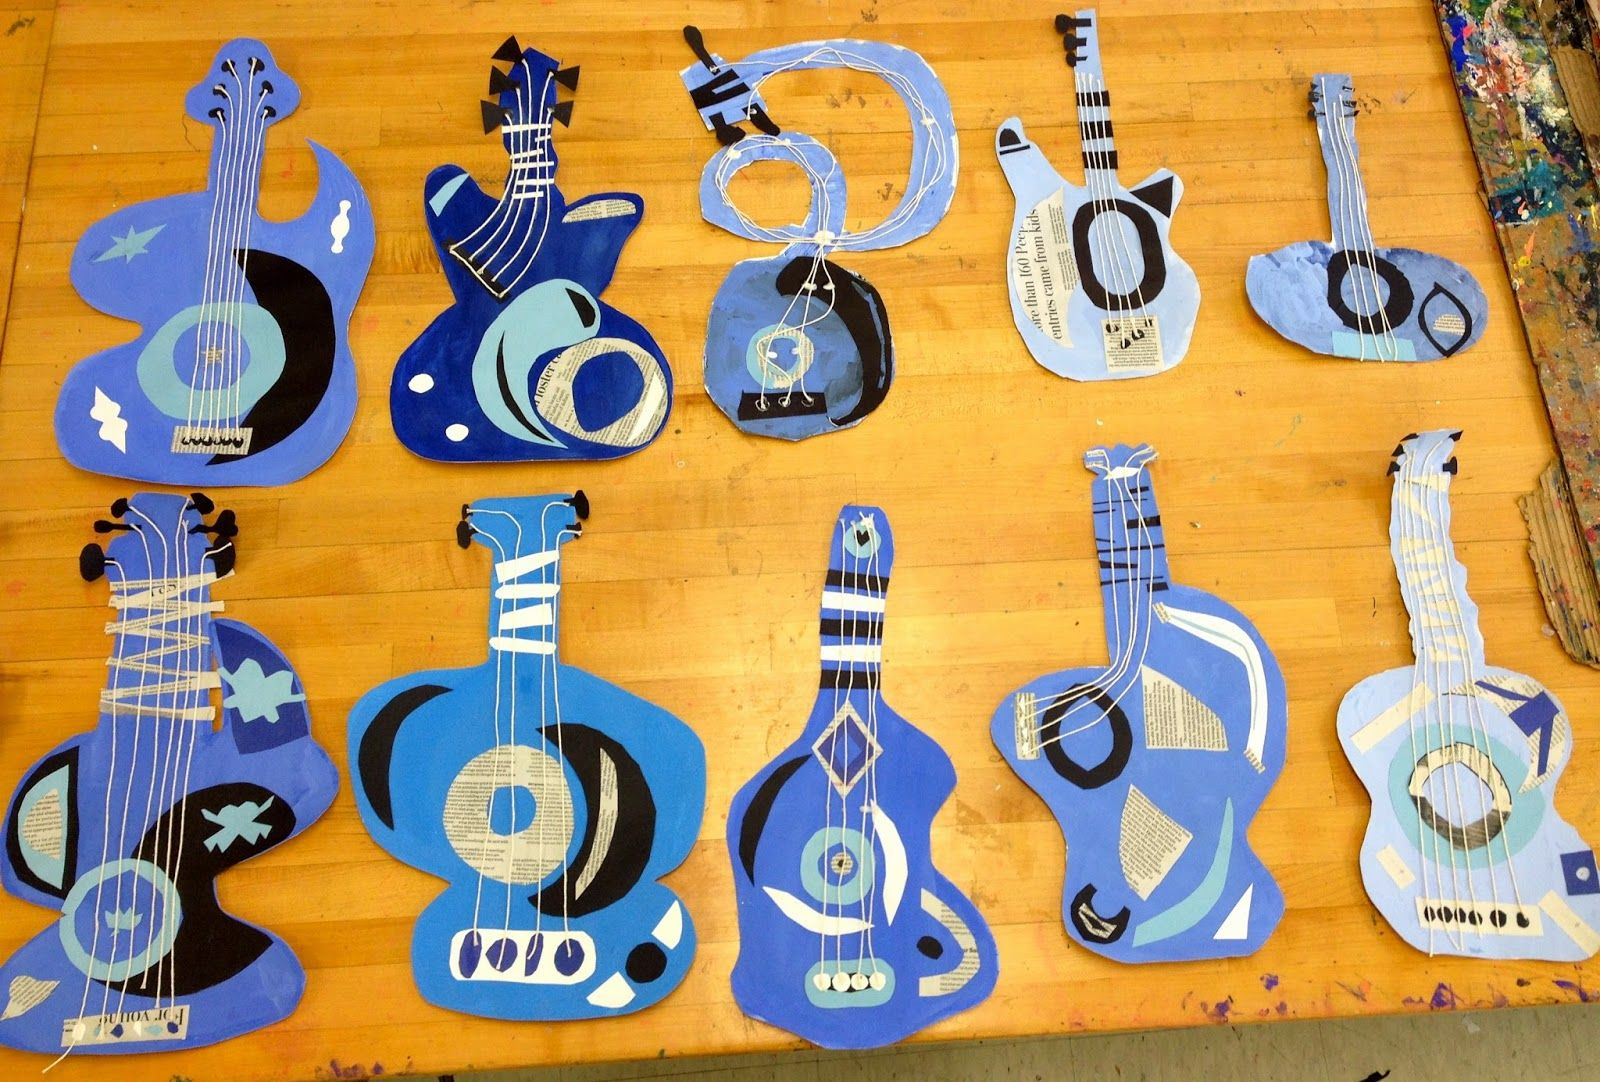 Picasso Blue Period Abstract Guitars Monochromatic Tint Shade Using